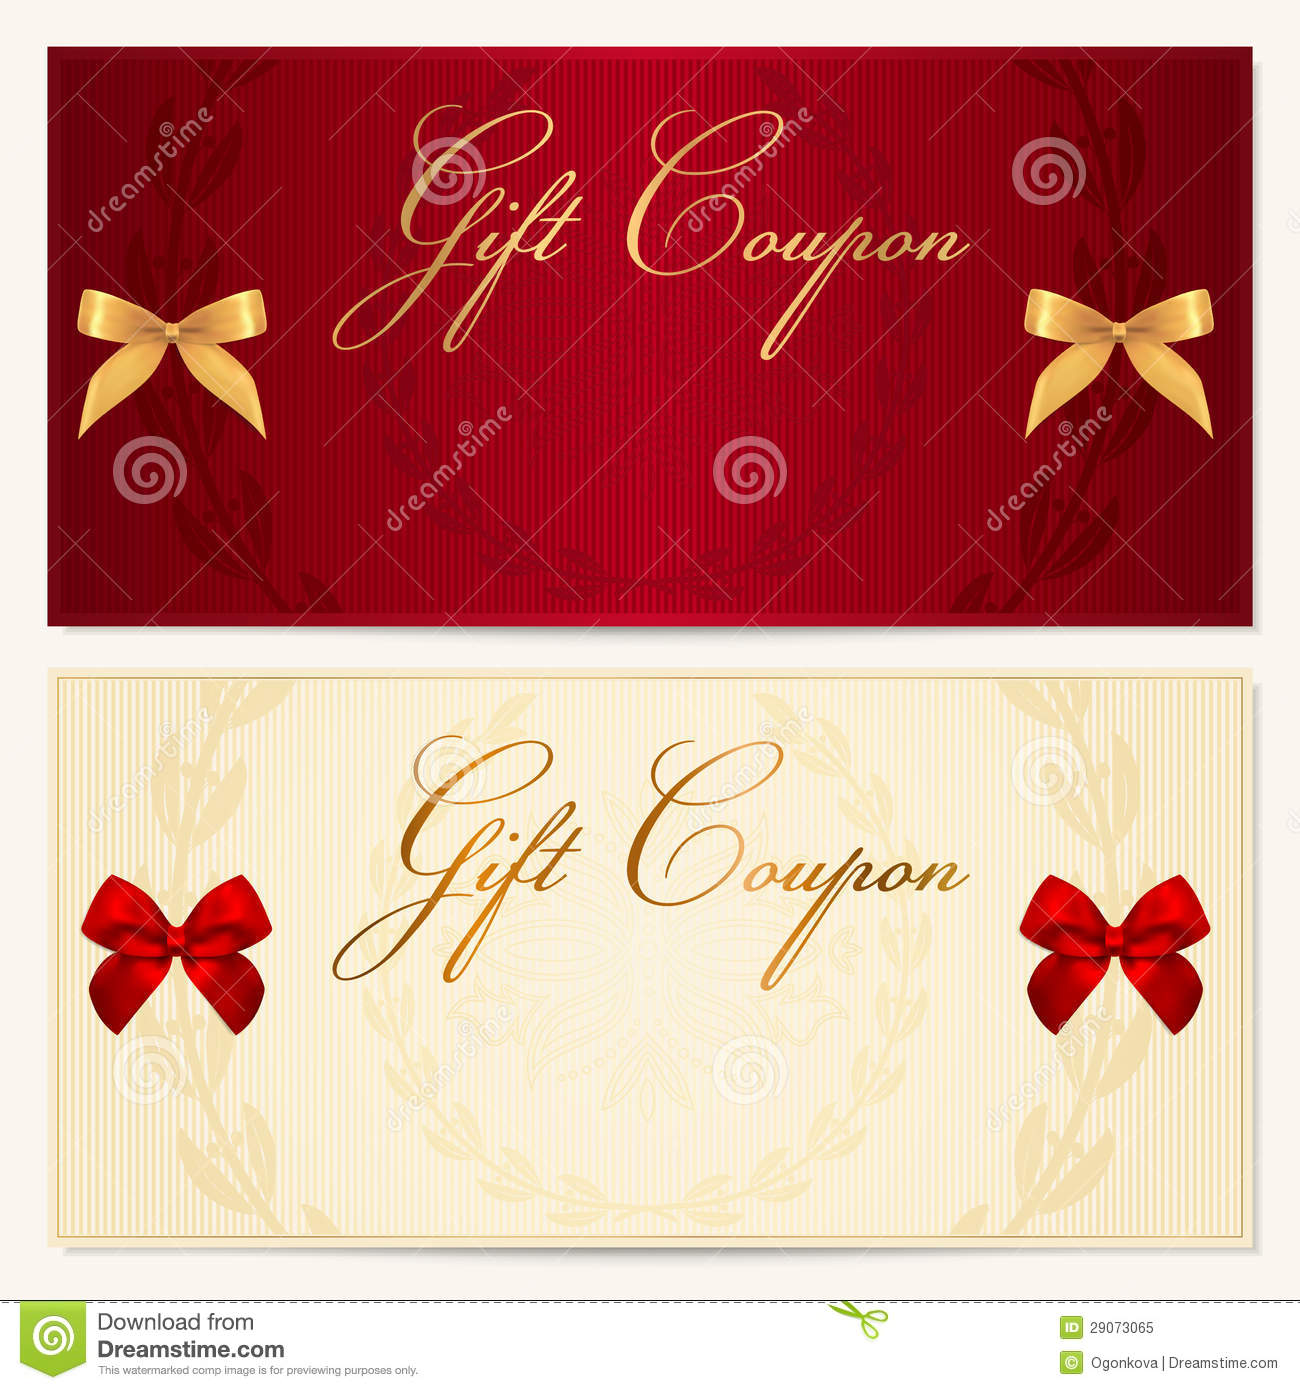 Gift voucher coupon template bow ribbons stock vector gift voucher coupon template bow ribbons yelopaper Images